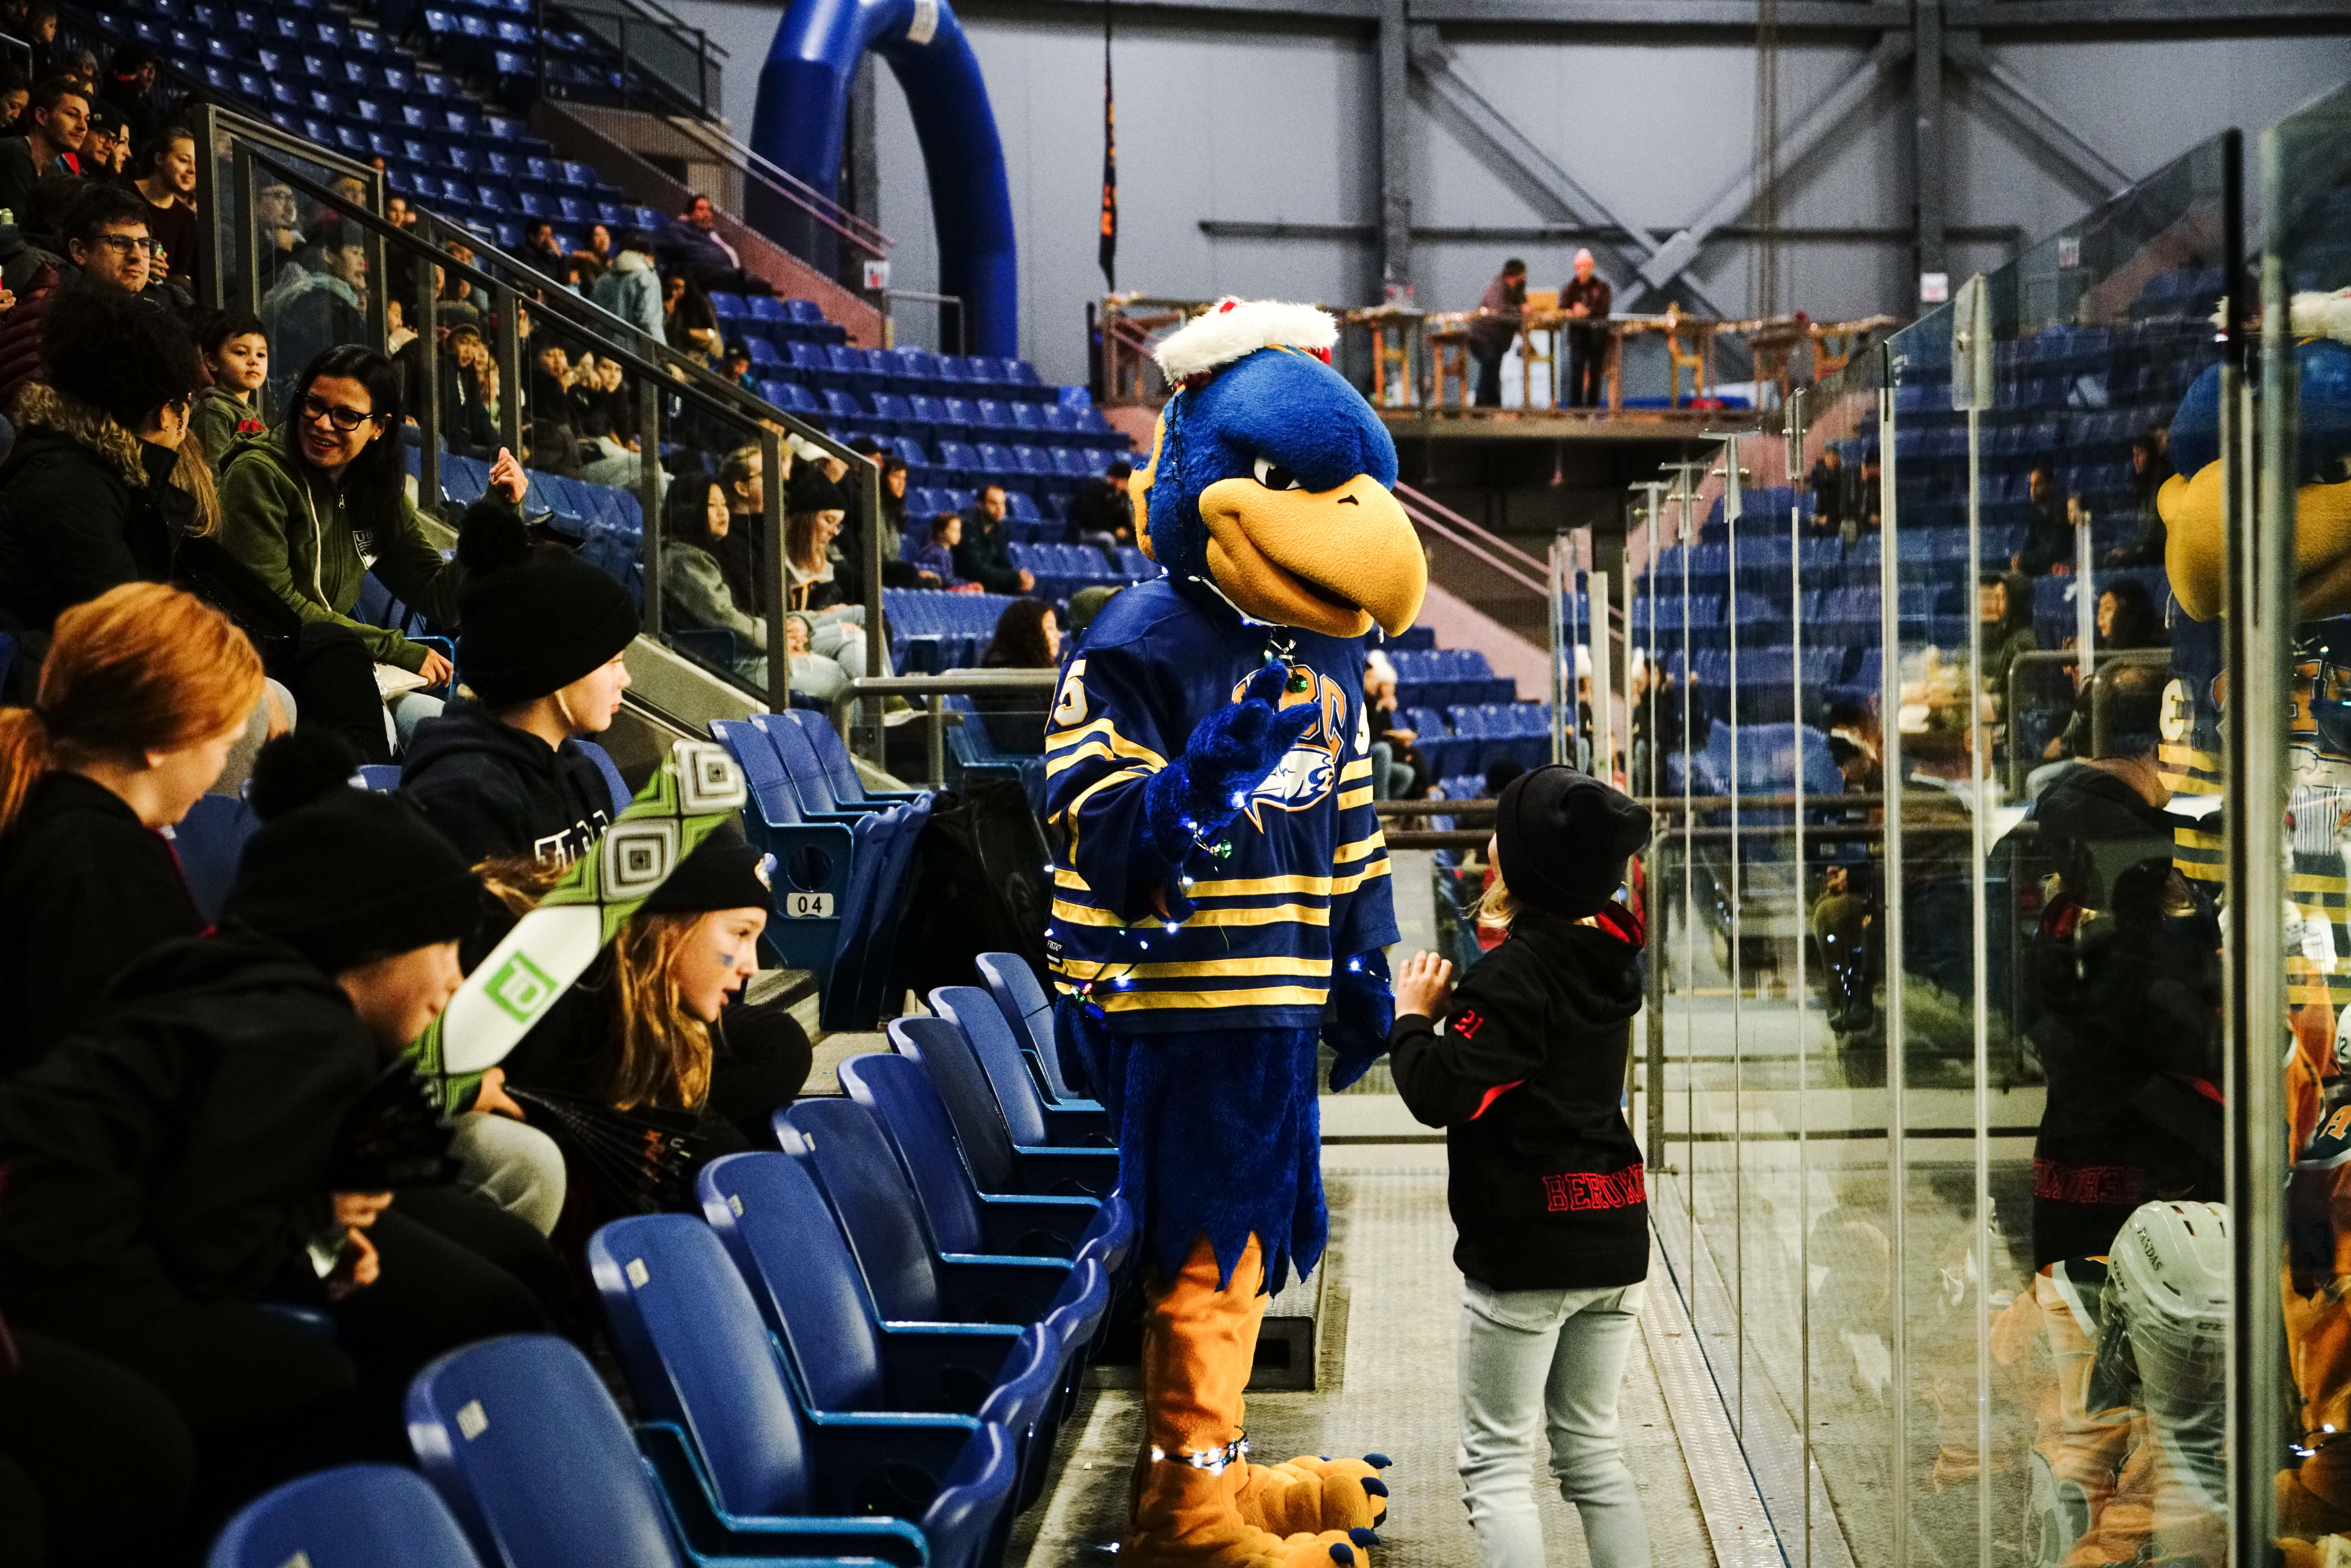 Thunder the mascot plays with a young Thunderbirds fan.